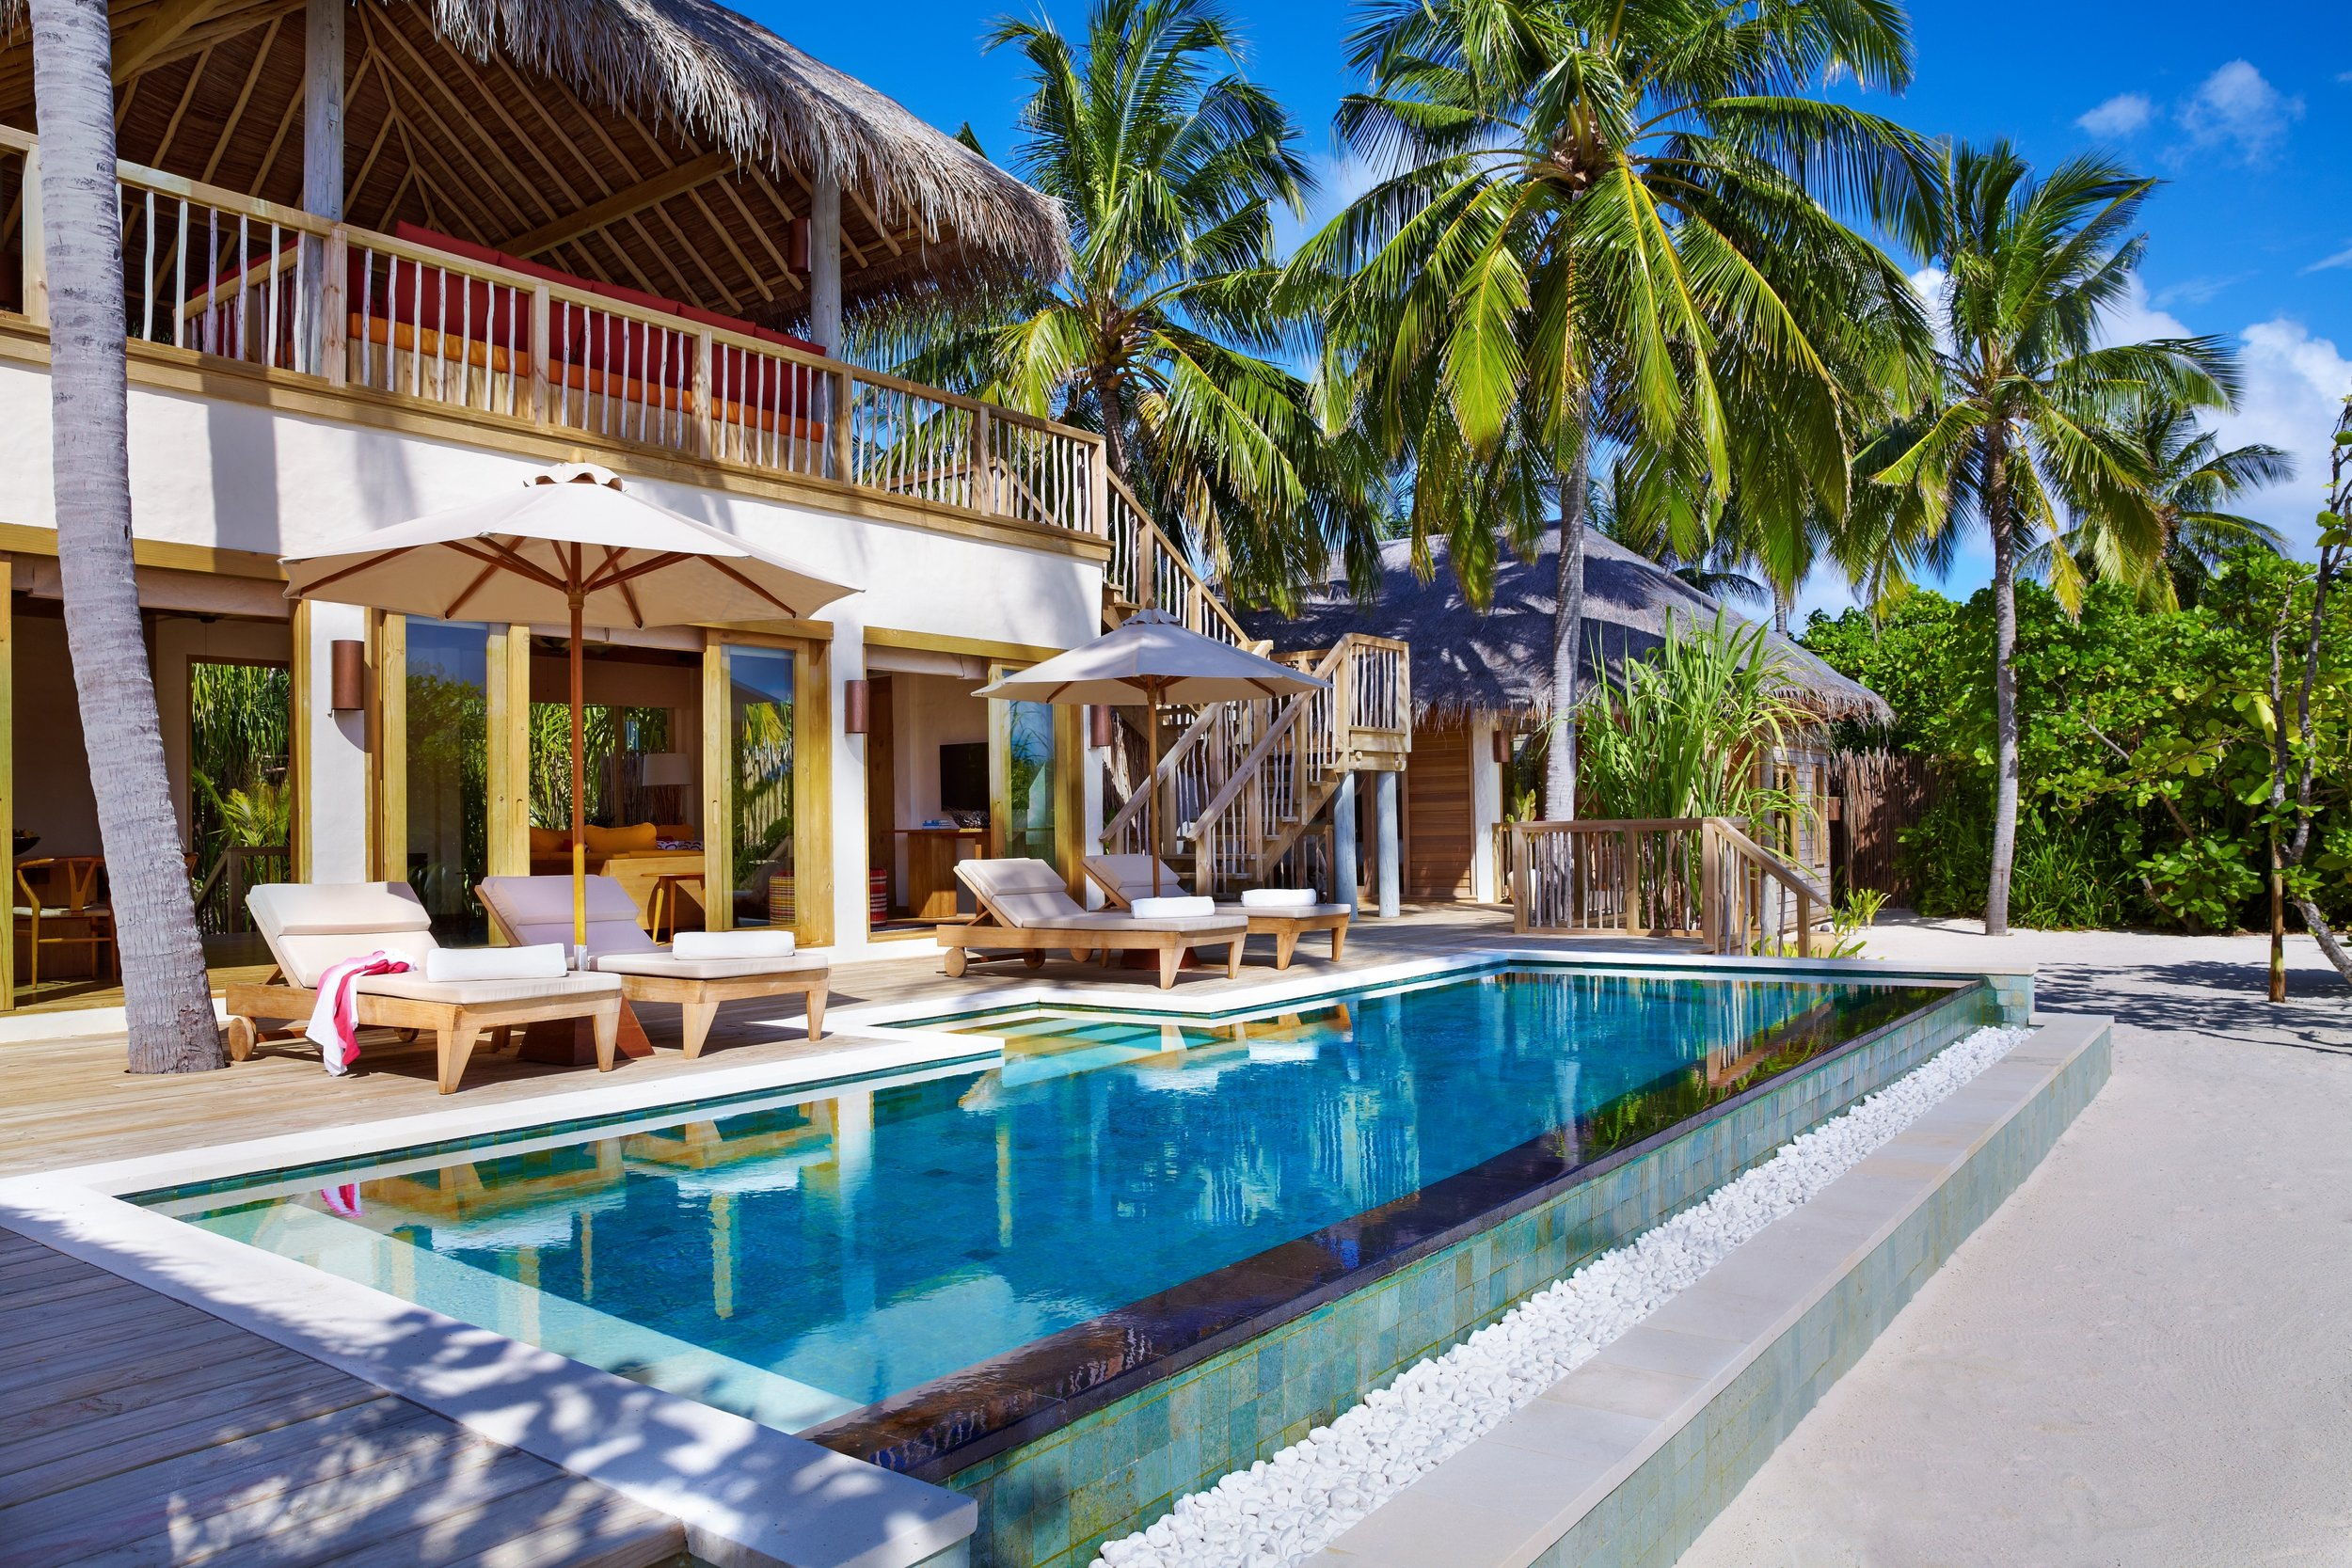 Two_Bedroom_Ocean_Beach_Villa_with_Pool_exterior_[6045-A4].jpg